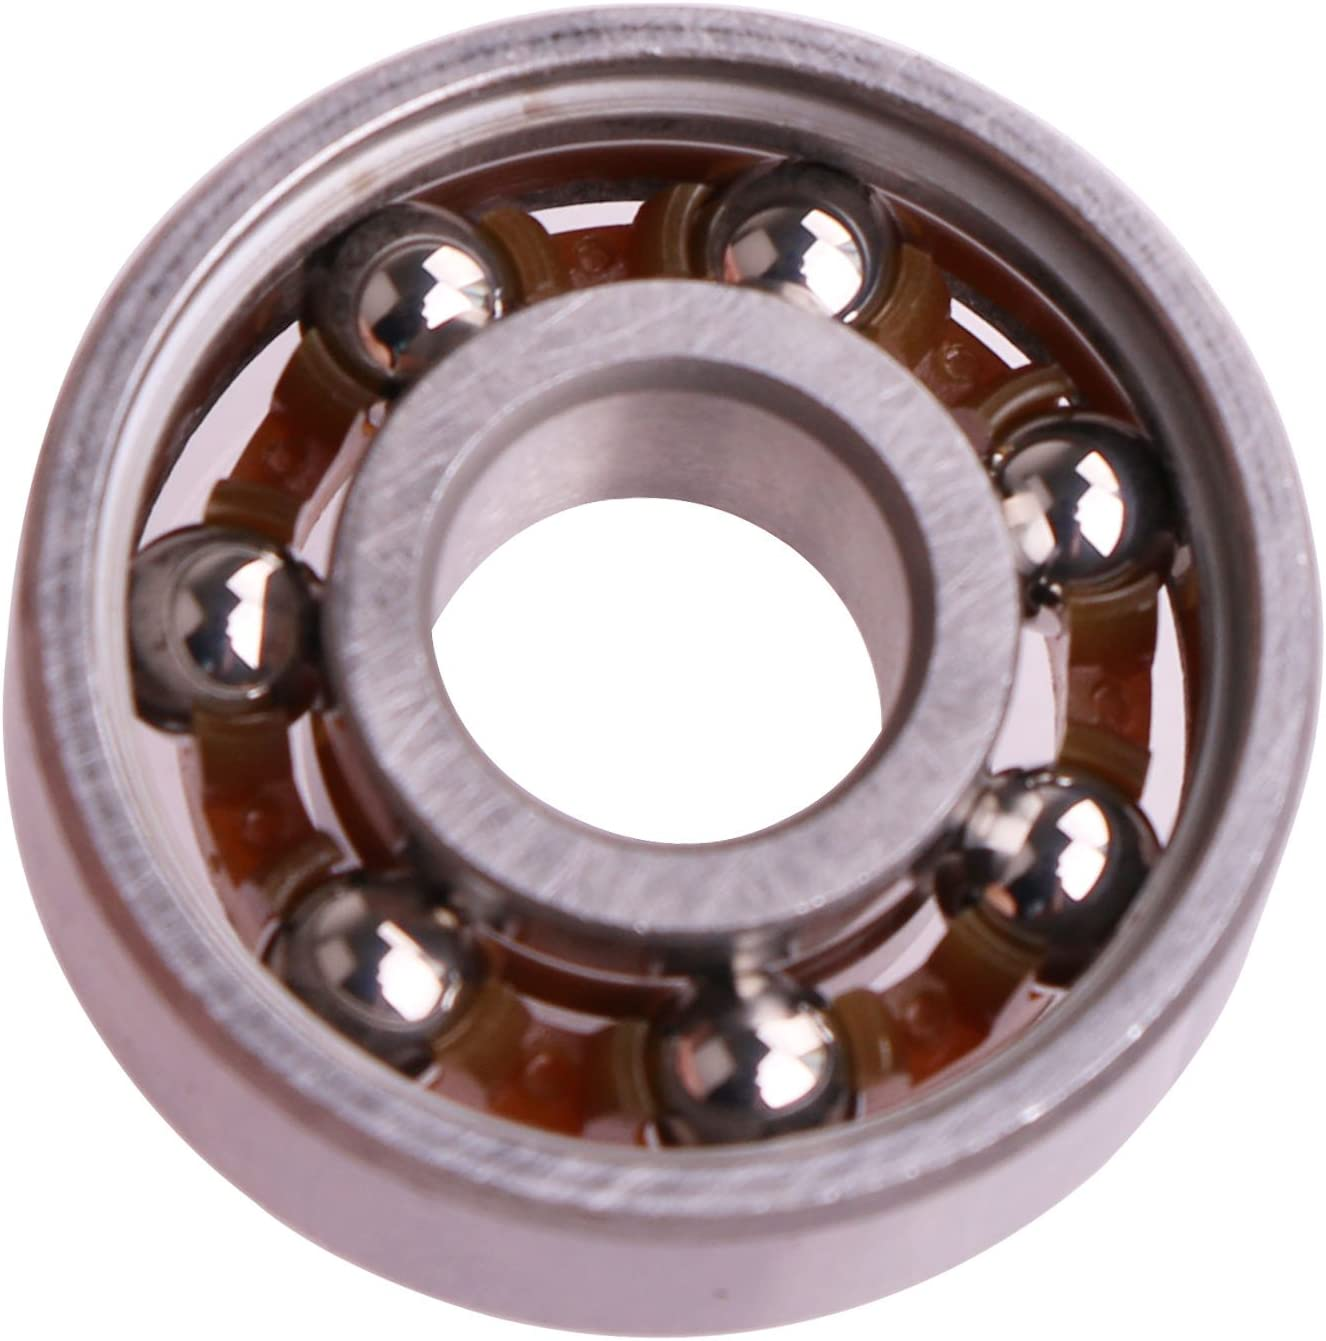 Mini Skater Stainless Steel Bearings High Speed Replacement Bearing Use for Toy with 1.5~2 Minutes Rotating time